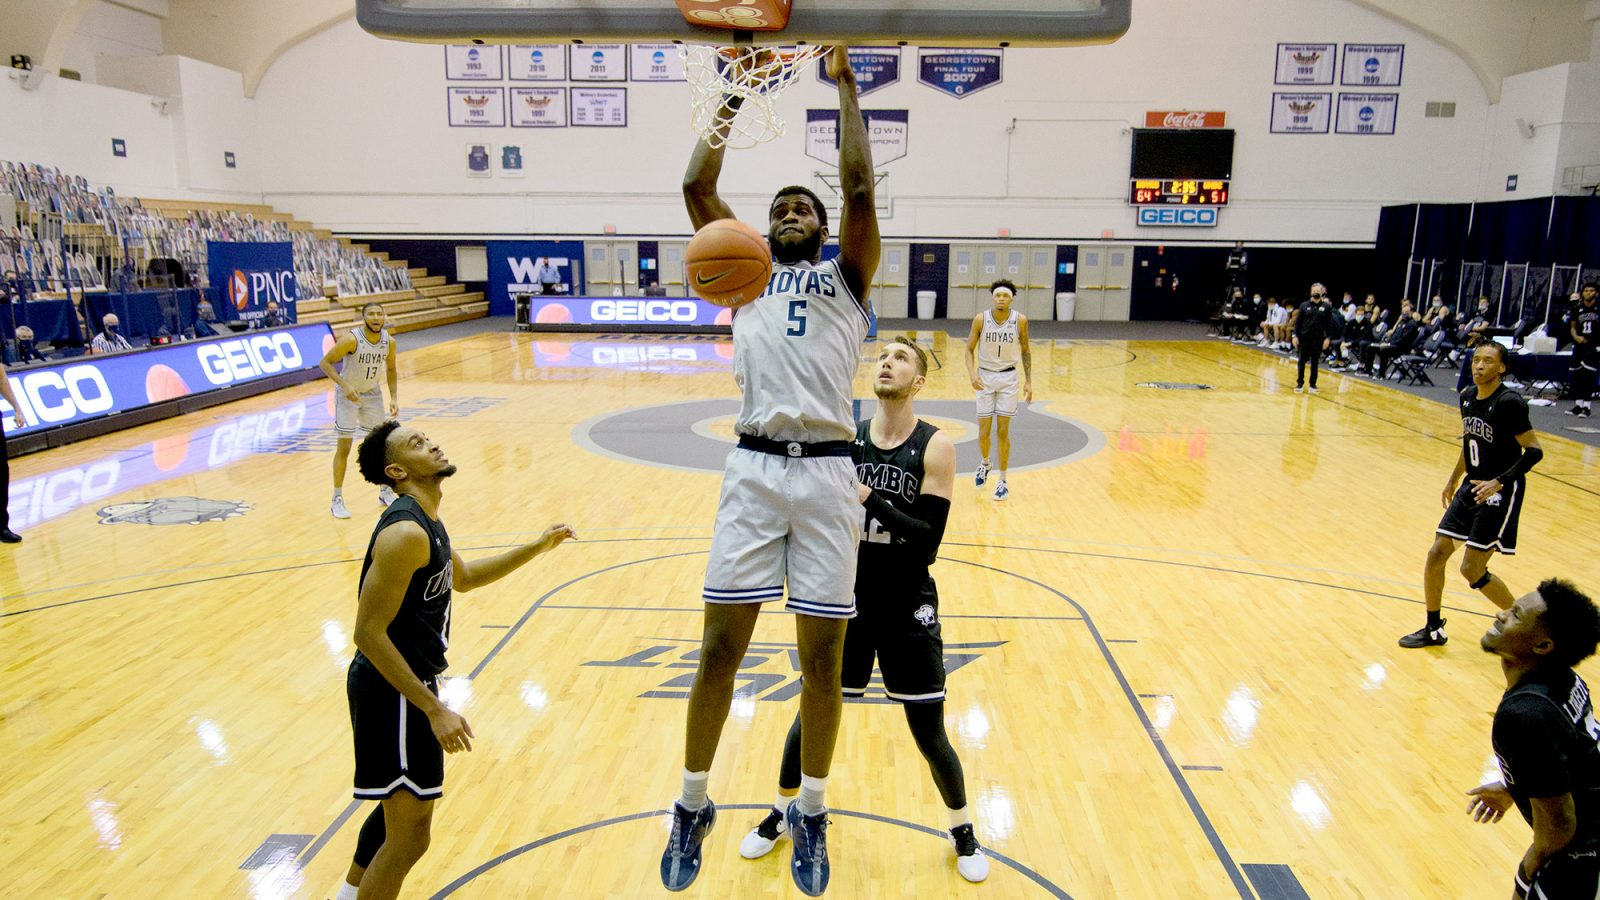 A Hoya basketball player dunks the ball in a basket as playerss from another team look on.